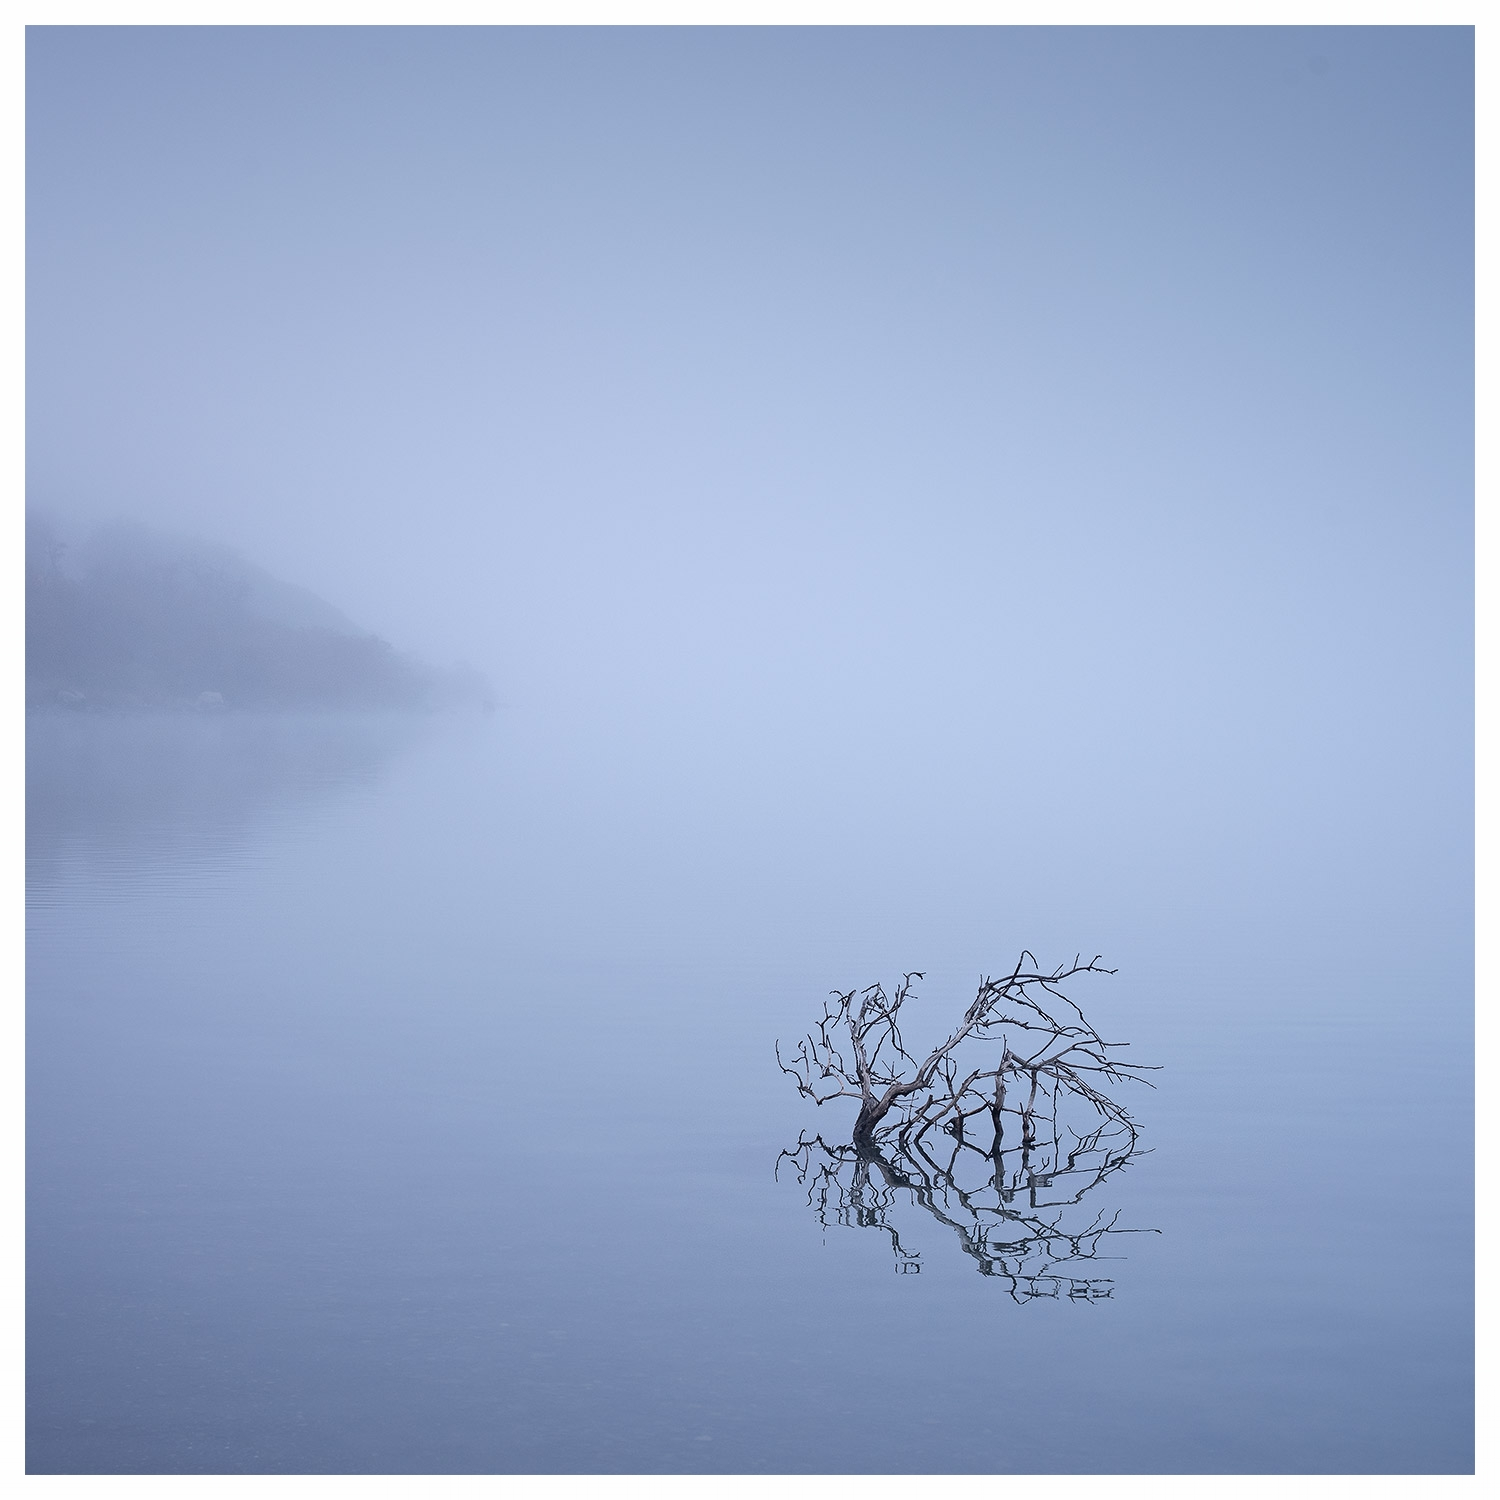 Lago Pahoe-Patagonia - This image was made just after midday. The weeping branch in the water has a soft feel about it and the soft light made by the fog complements the subject and works harmoniously with the whole image. Any other srt of light I think would not work leaving just a branch in a lake which by itself is not that interesting.